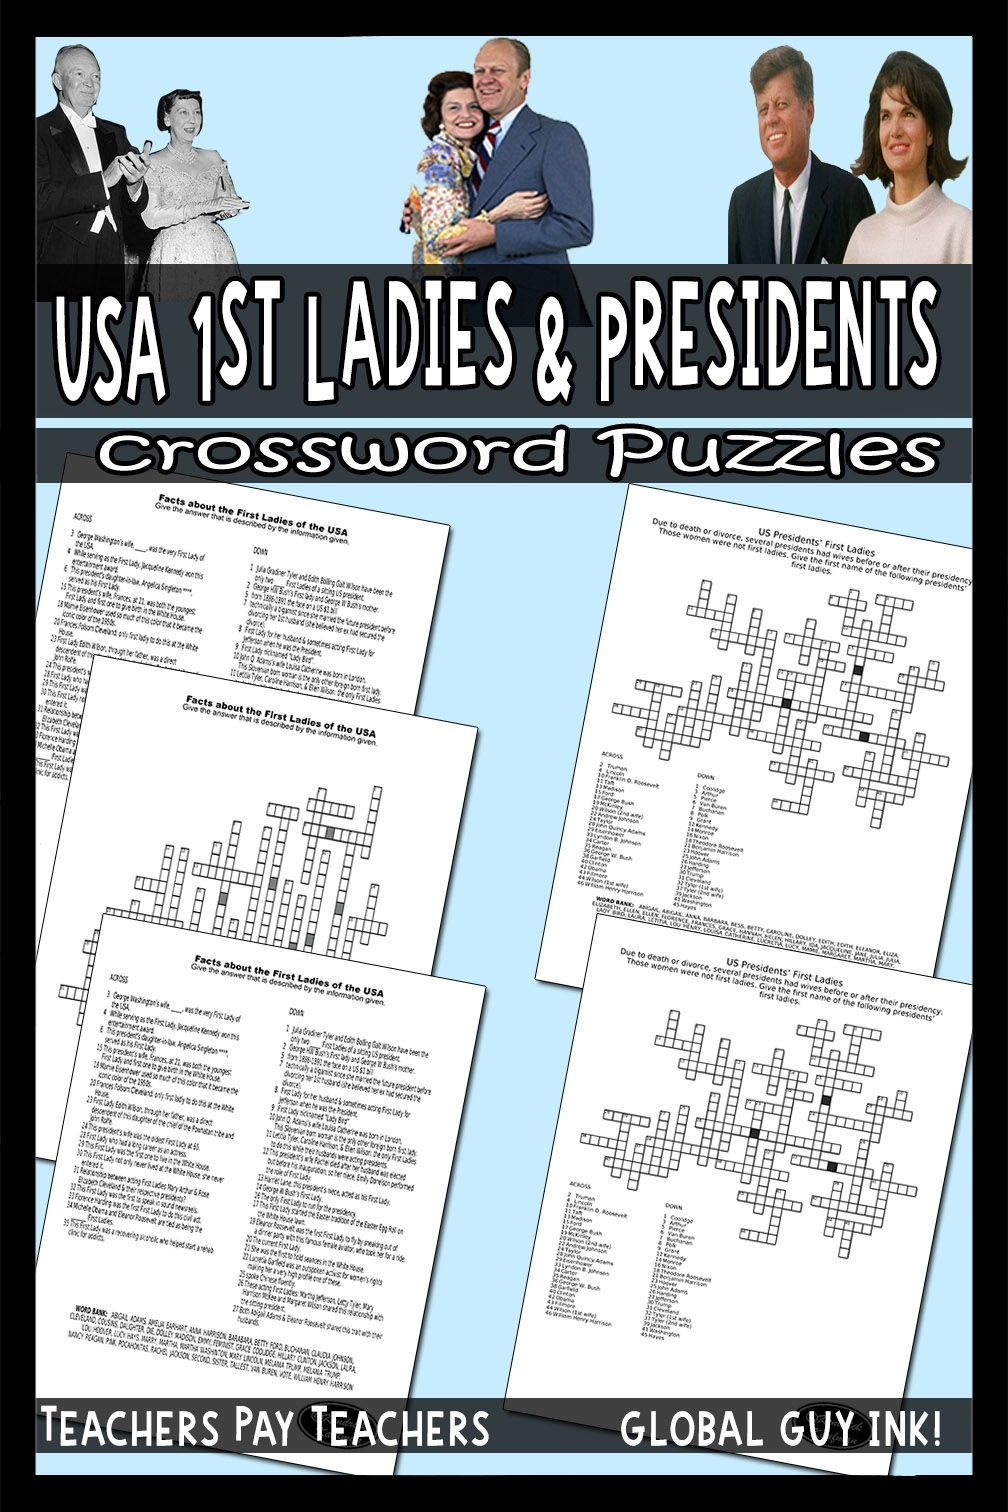 US Presidents & US First Ladies Crossword Puzzles #presidents